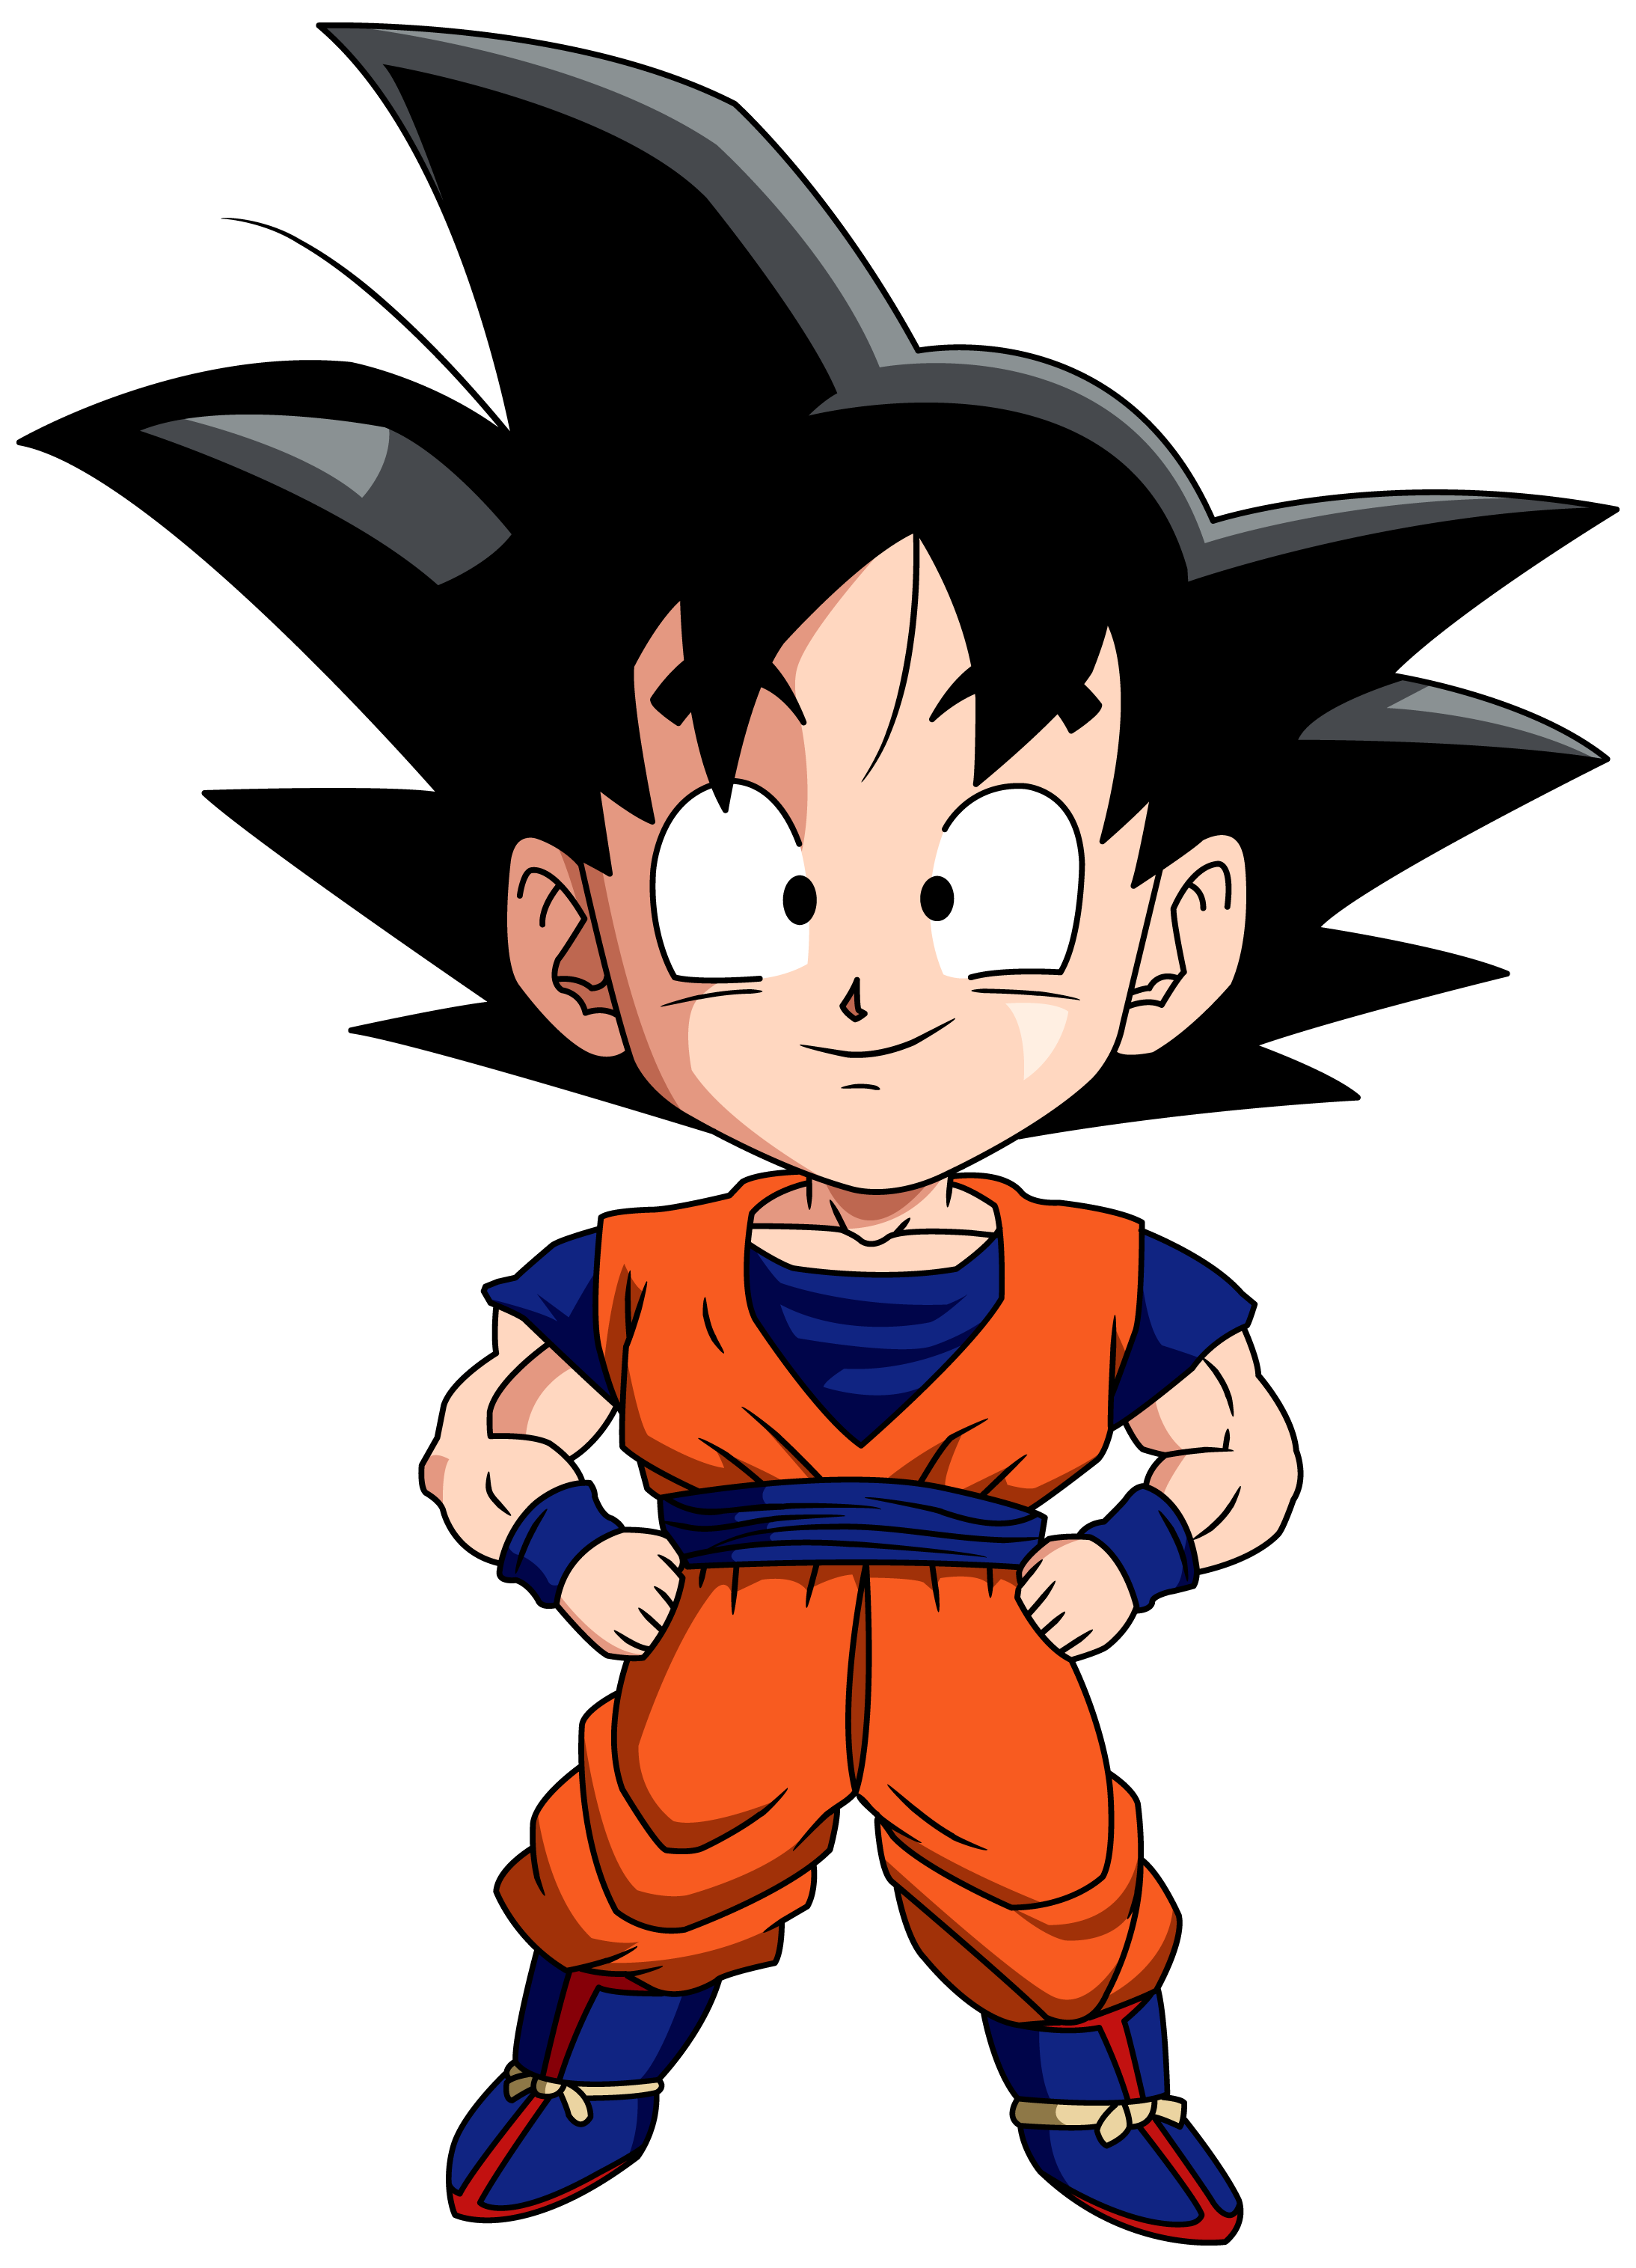 Chibis drawing goku. Pin by alberto chan